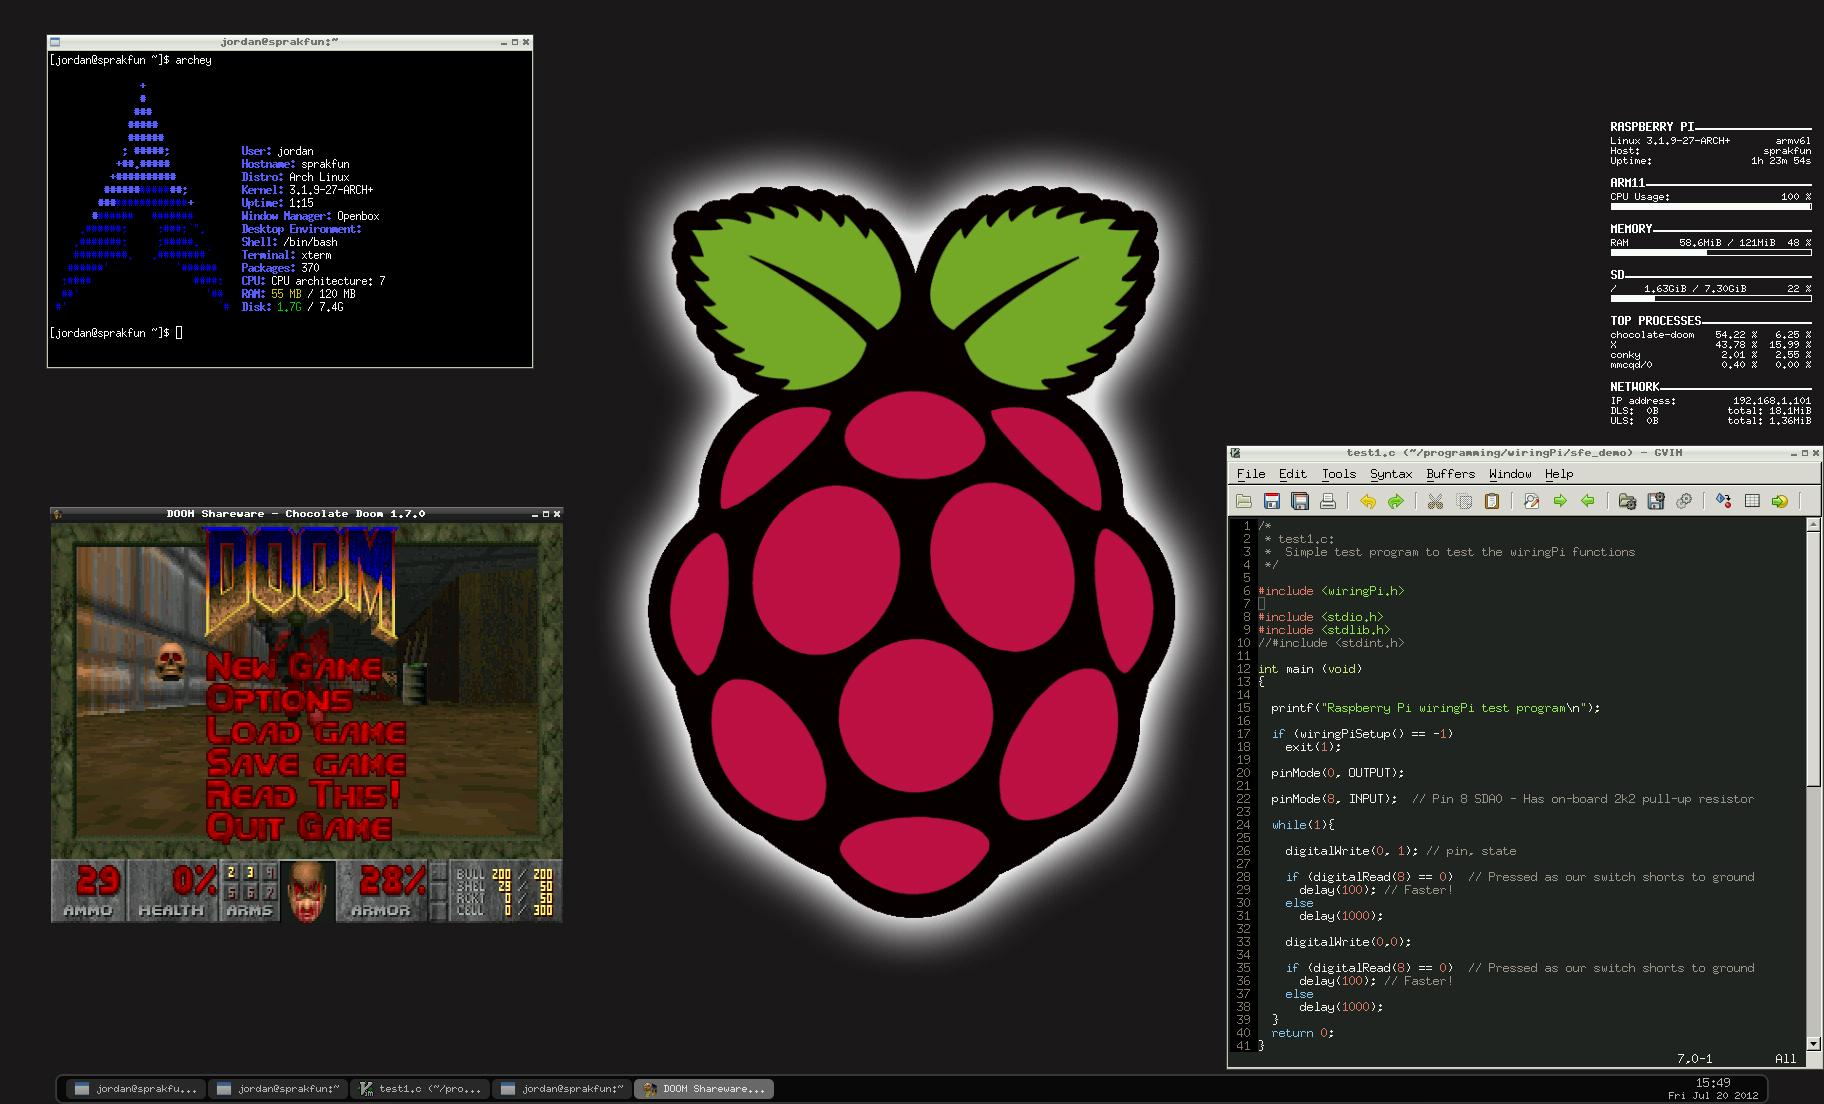 Raspberry pi 2 linux os download